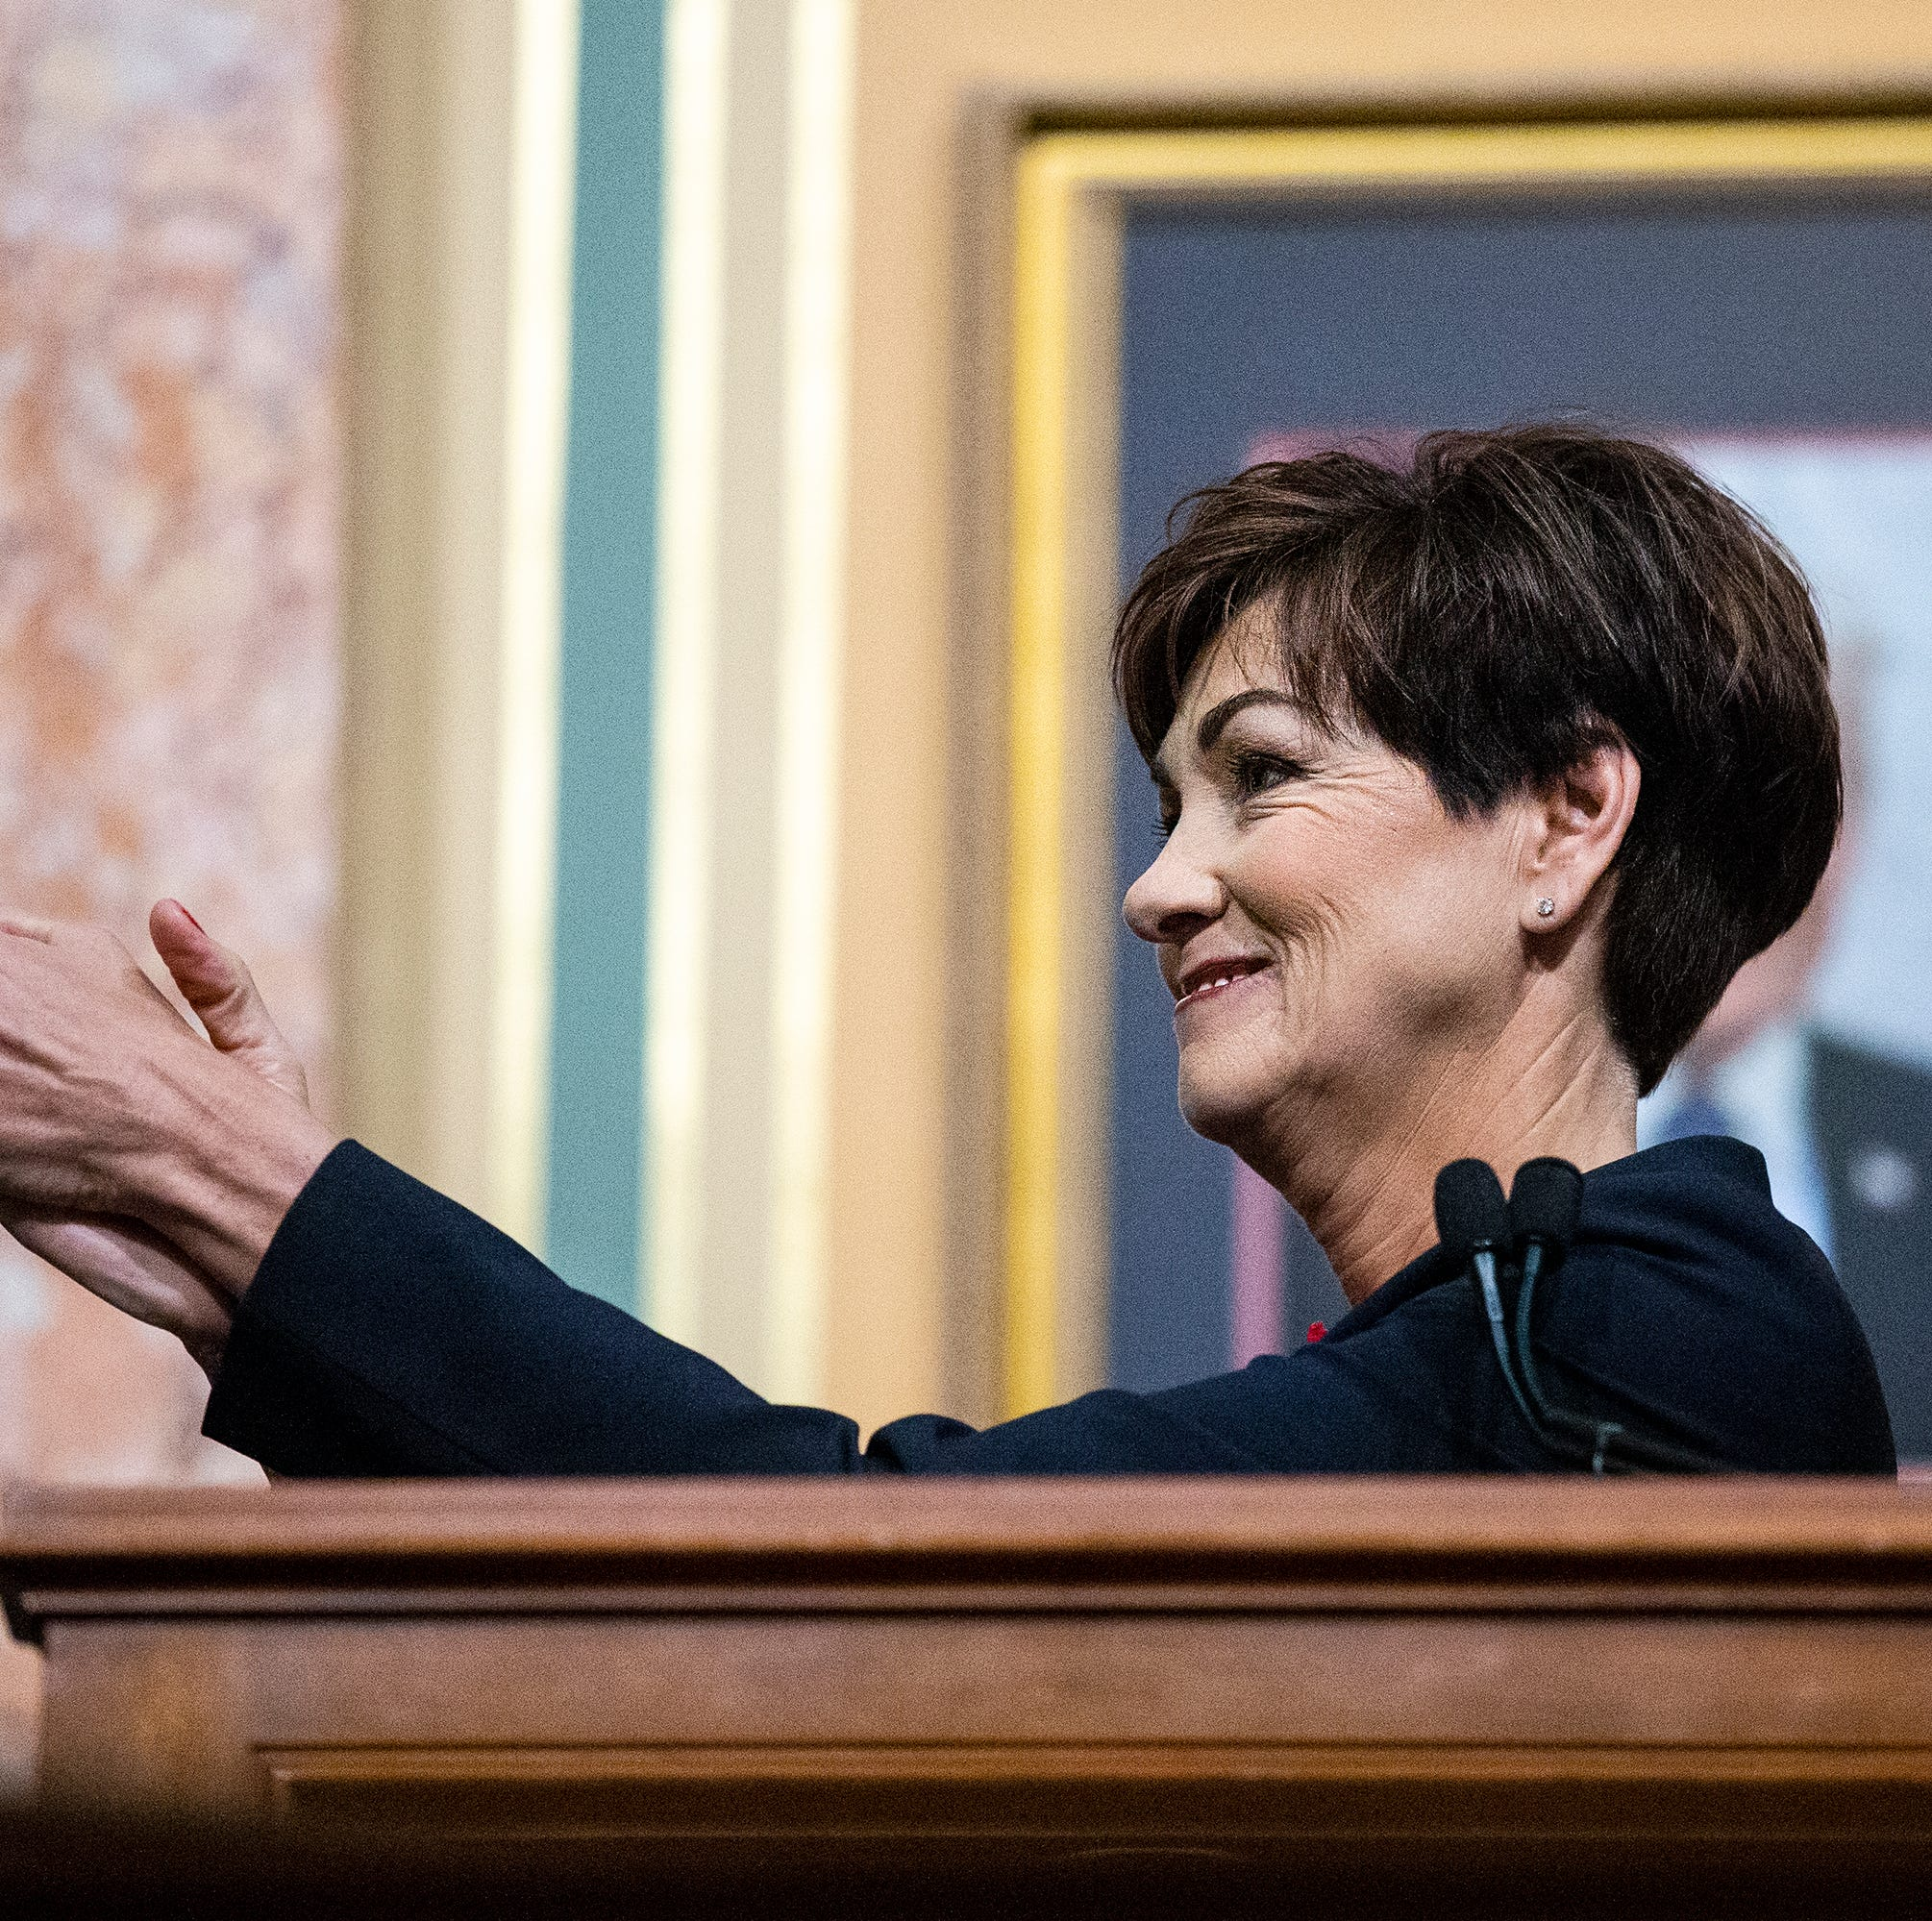 Gov. Kim Reynolds' agenda prioritizes genuine Iowa issues over partisan ideology